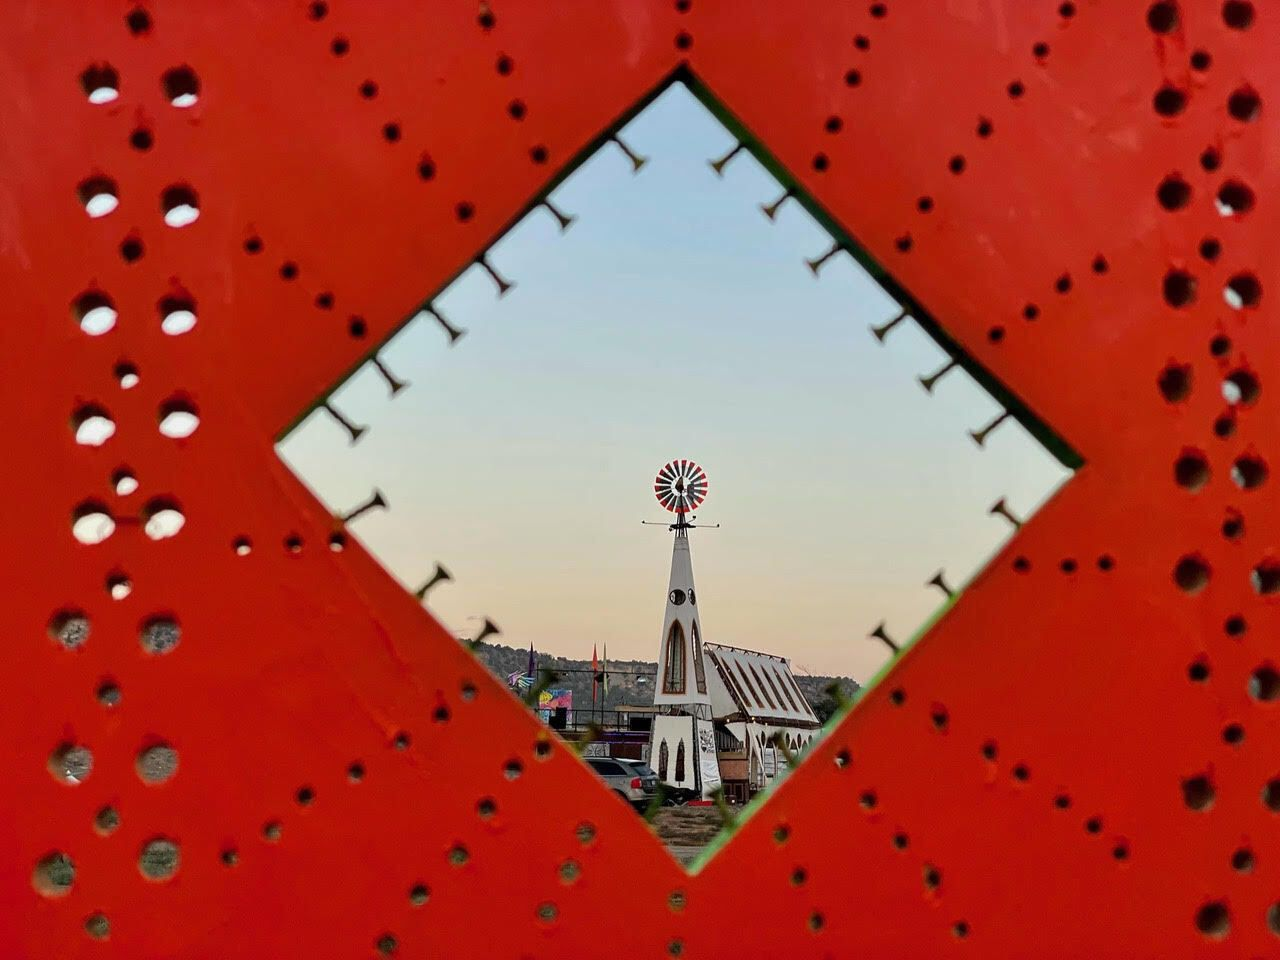 View of windmill through a red diamond